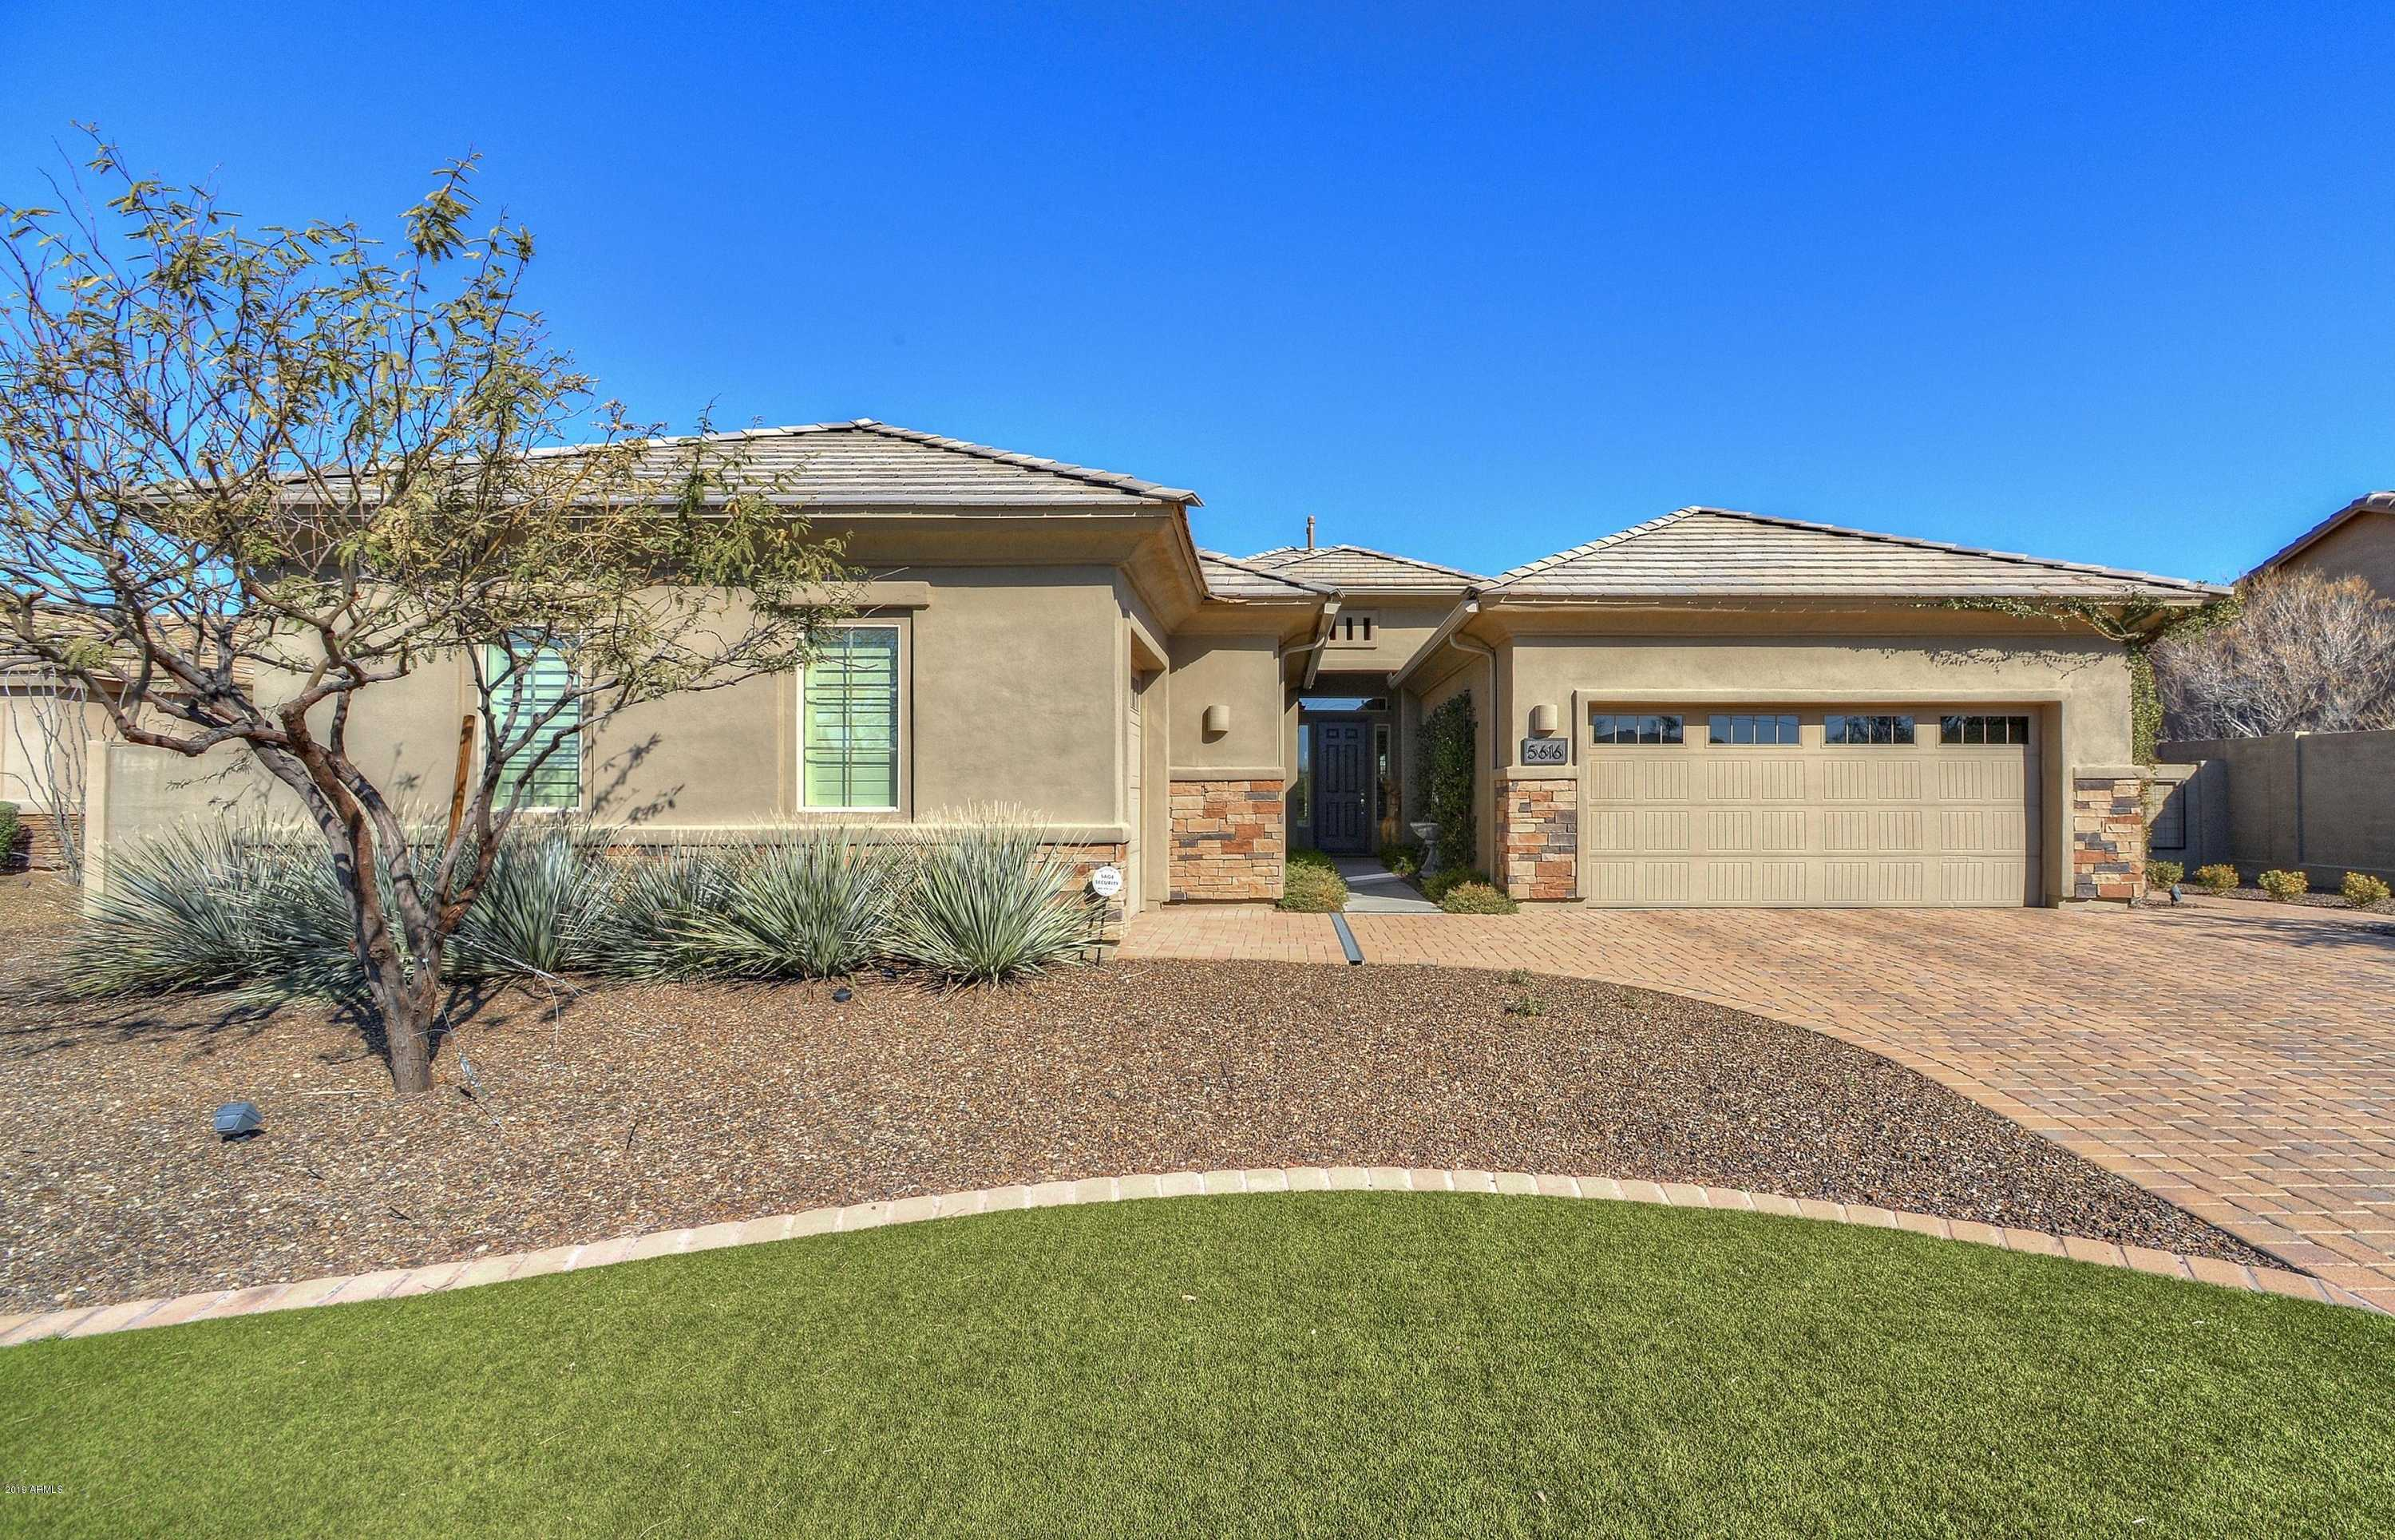 $715,000 - 4Br/3Ba - Home for Sale in Lone Mountain, Cave Creek